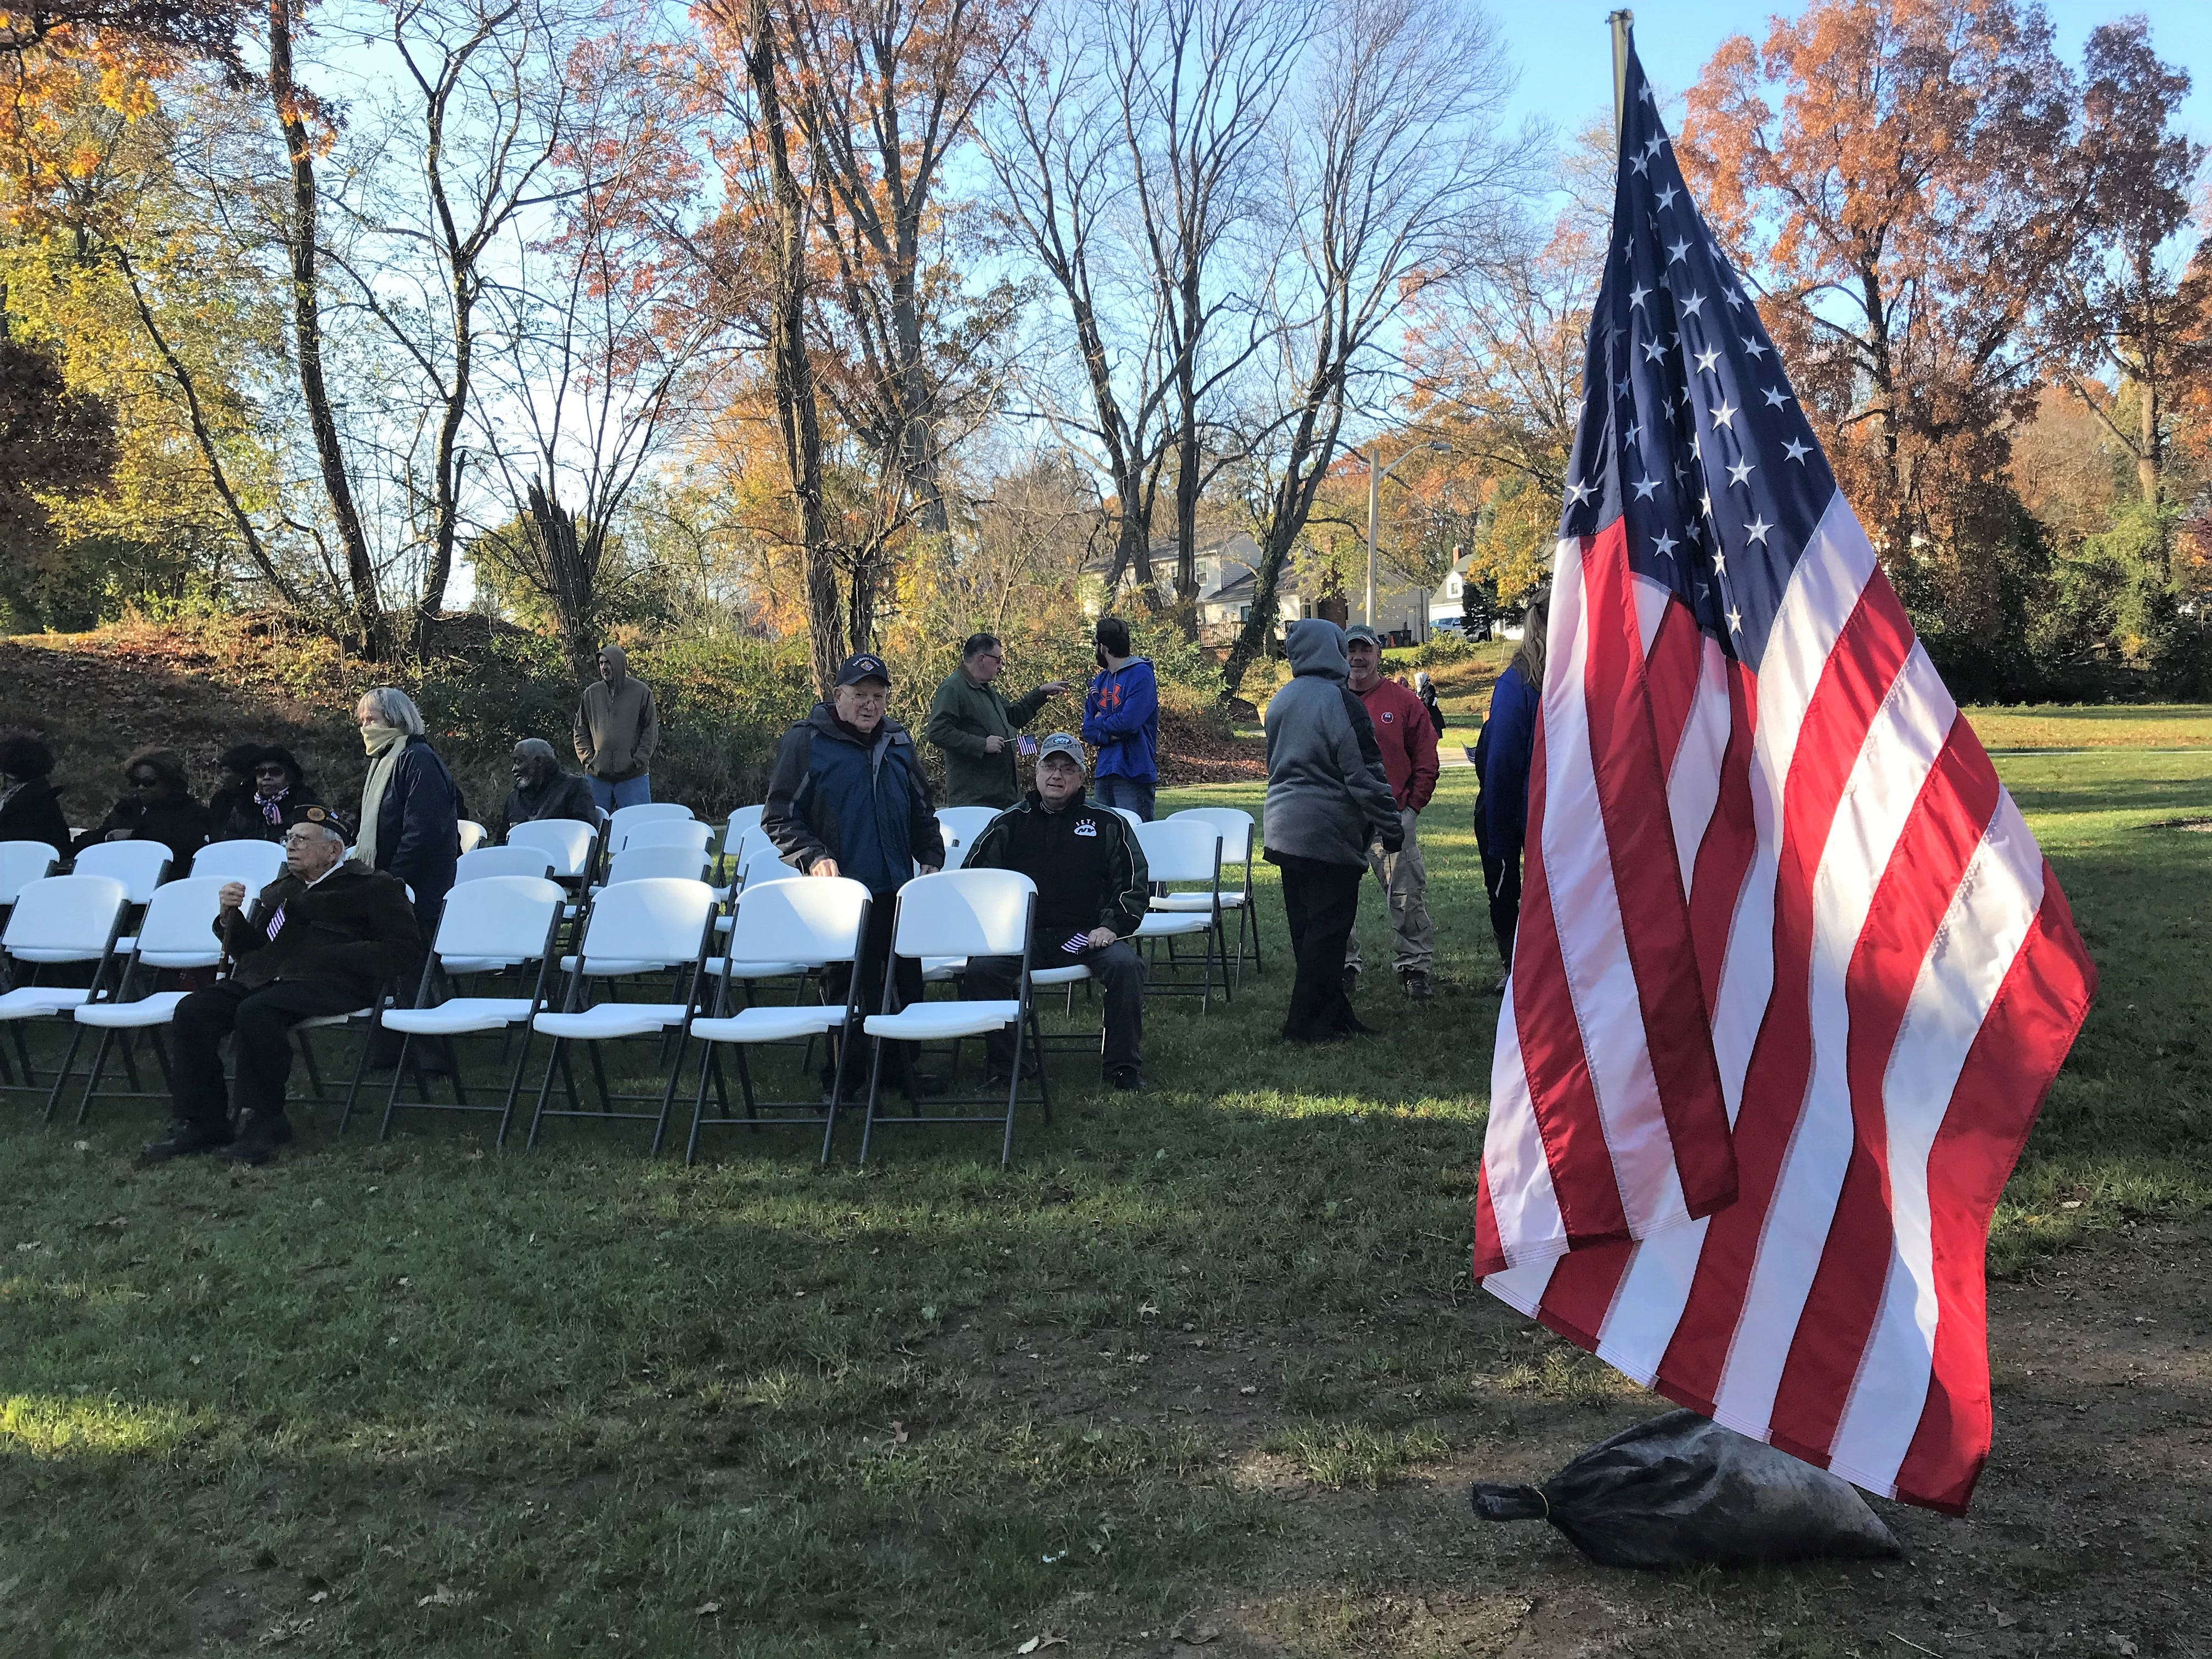 Veterans, residents and others start taking their seats ahead of the re-dedication of Veterans Park on Nov. 11, 2018. The ceremony commemorated the six Lewis brothers from Freehold Borough who served in World War II.